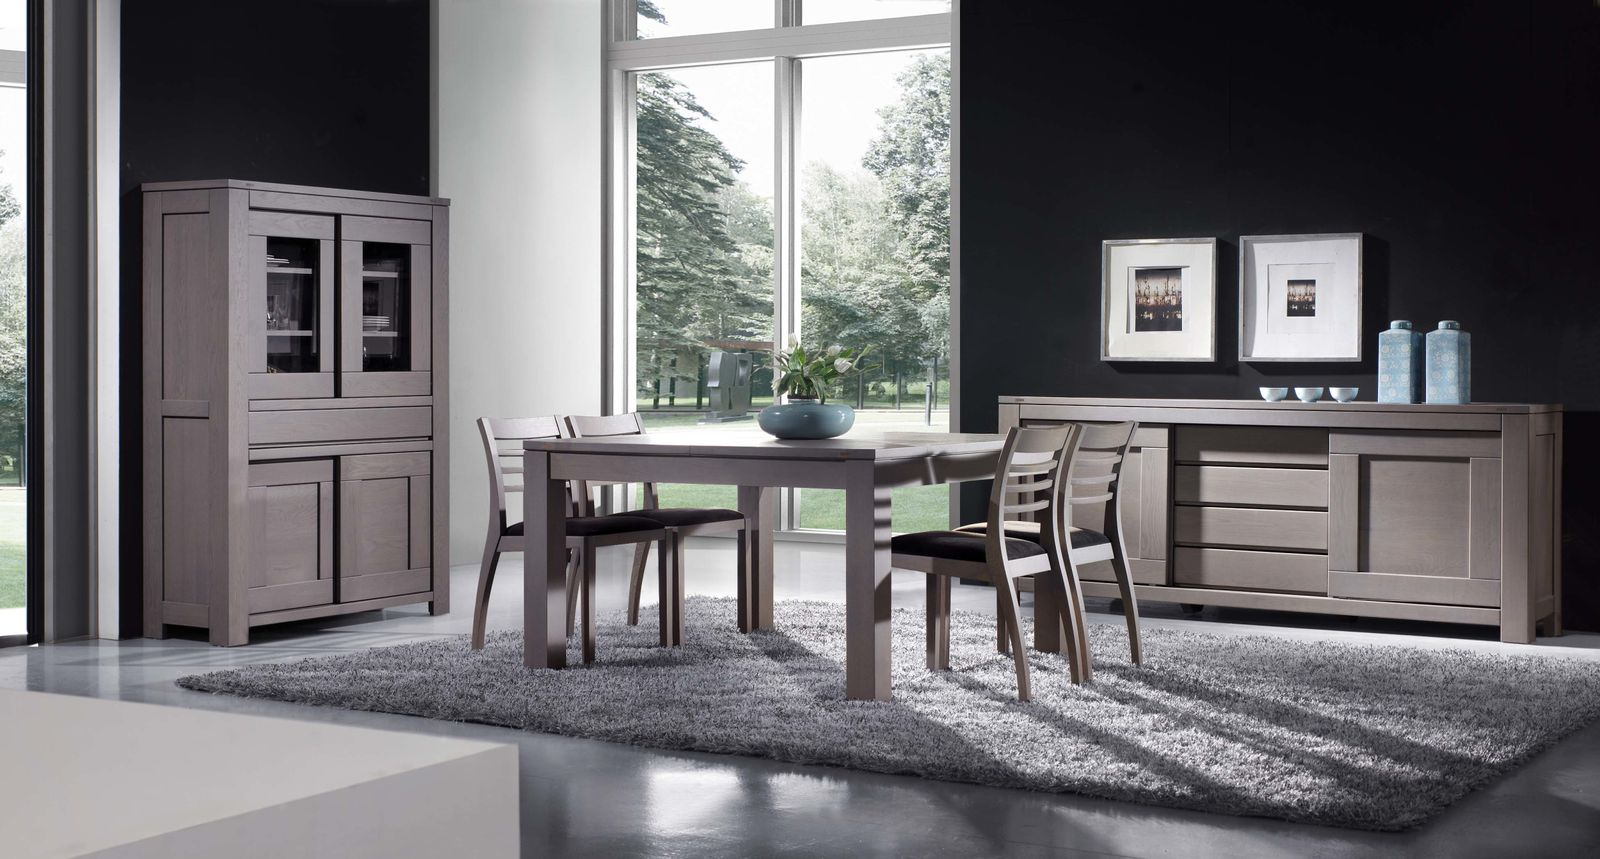 meubles contemporains en ch ne massif meublesdoudard. Black Bedroom Furniture Sets. Home Design Ideas